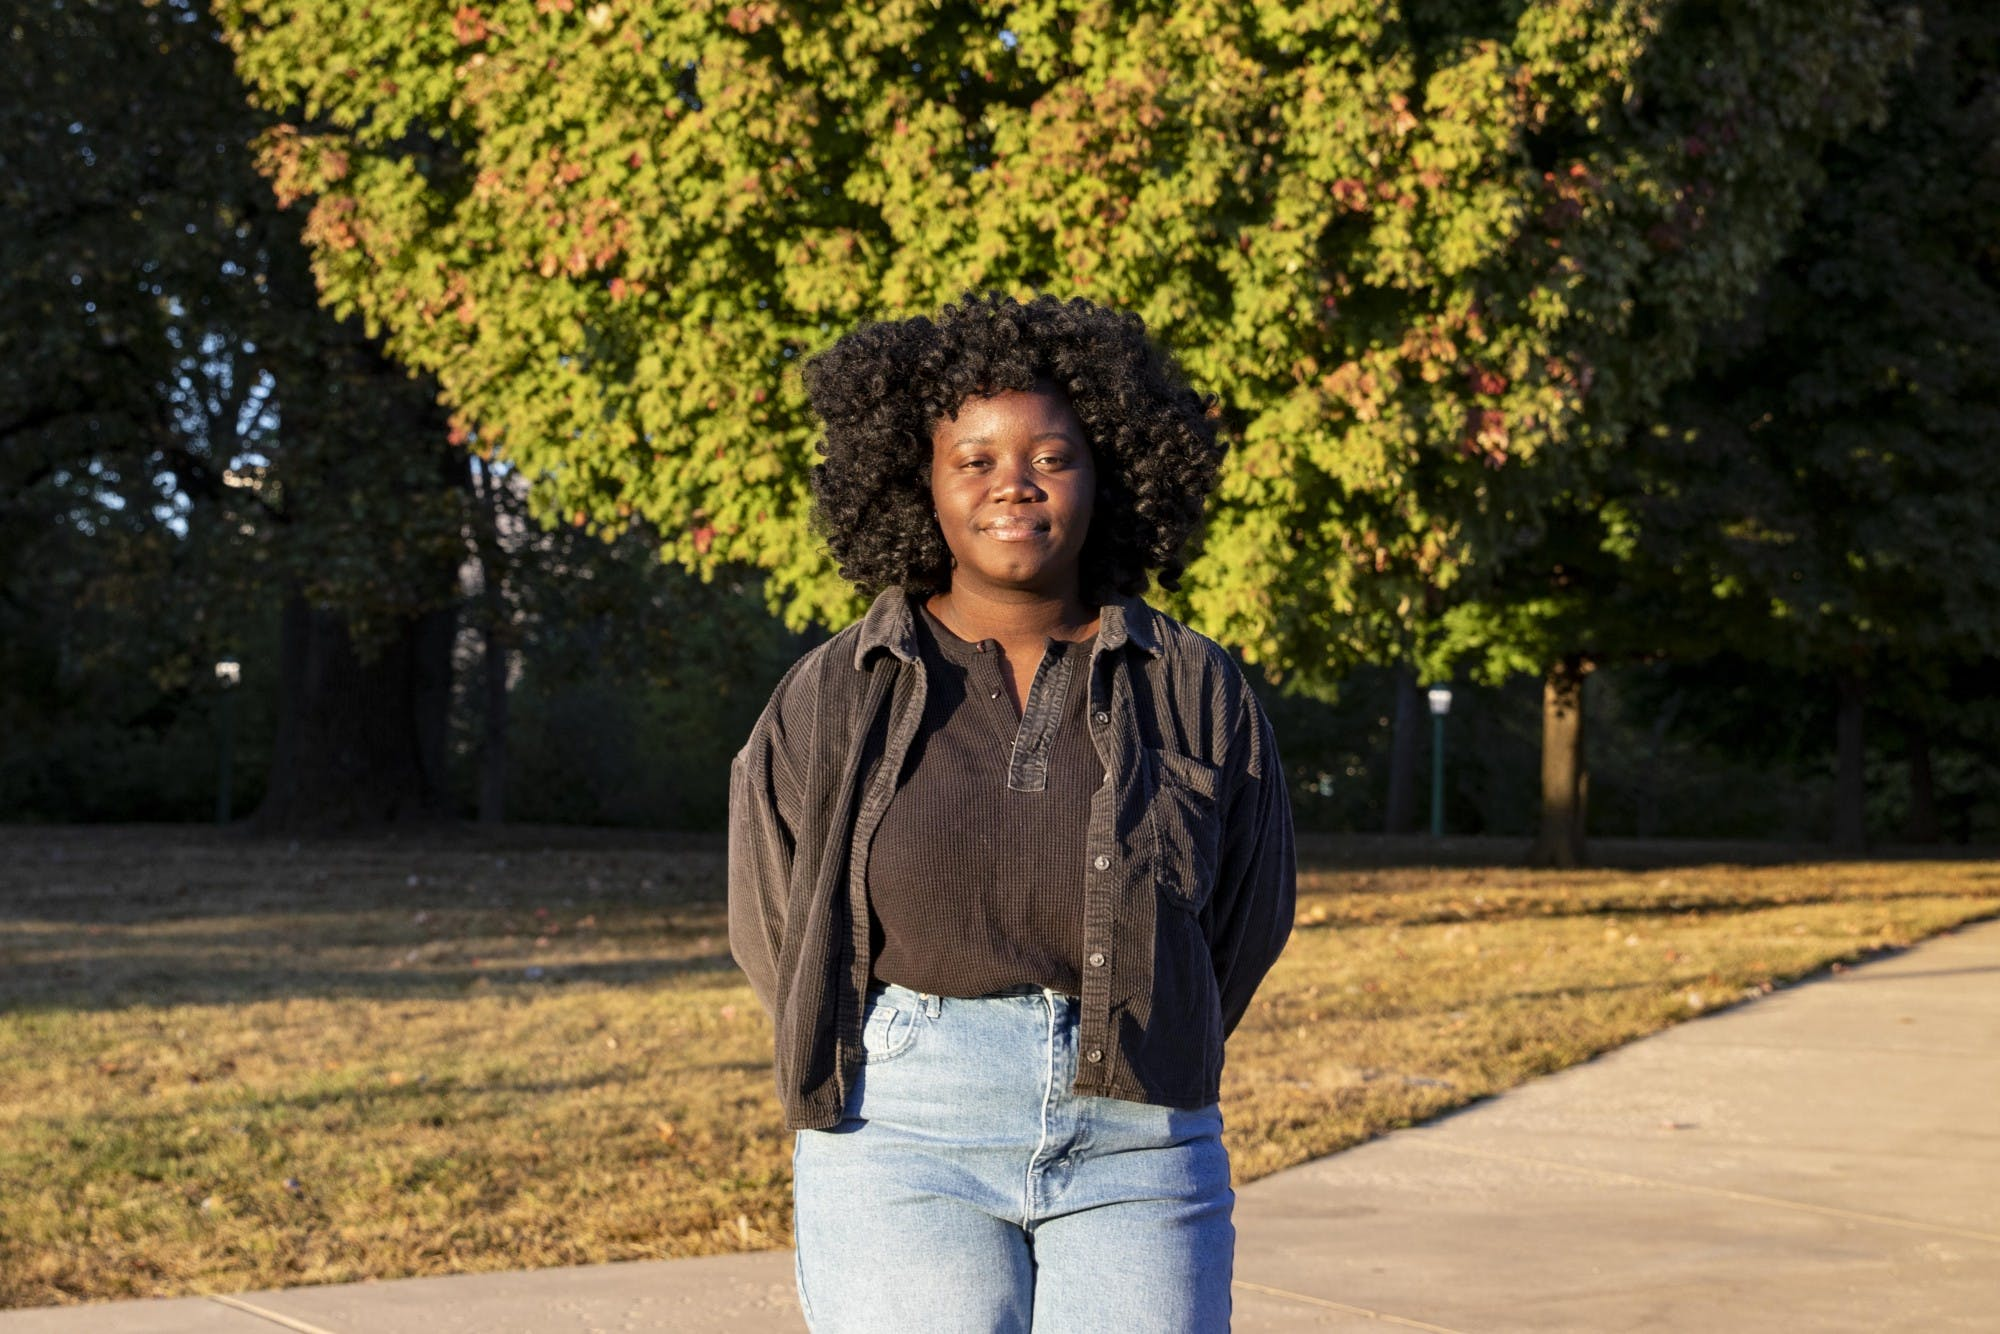 Junior Massa Massa Massaley stands in the sun Oct. 5in Bloomington, Indiana. Massaley is a Black student at IU and has experienced acts of bias alongside her best friend Alice Aluko.